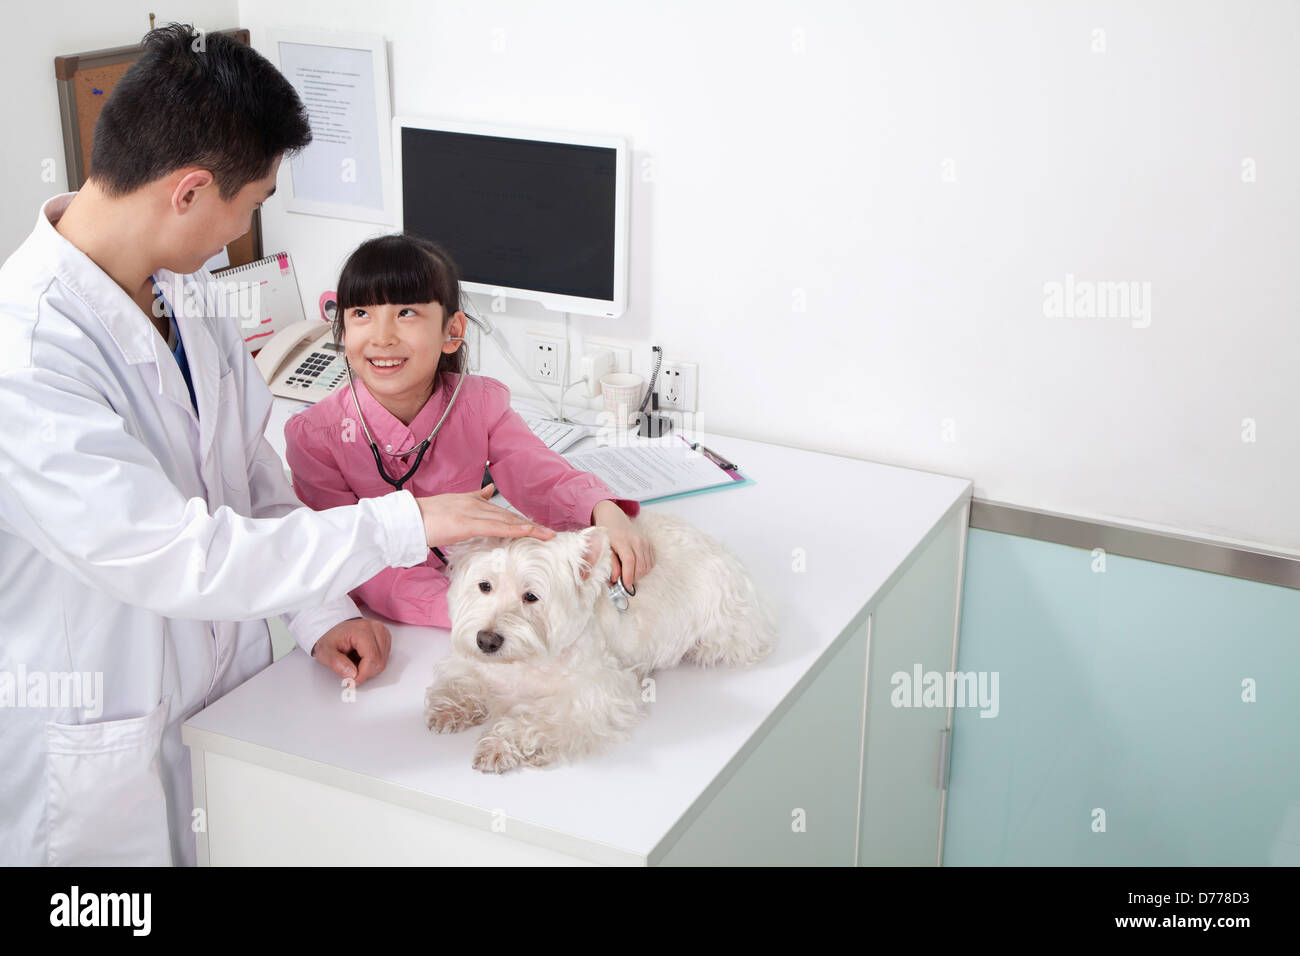 Girl with pet dog in veterinarian's office - Stock Image